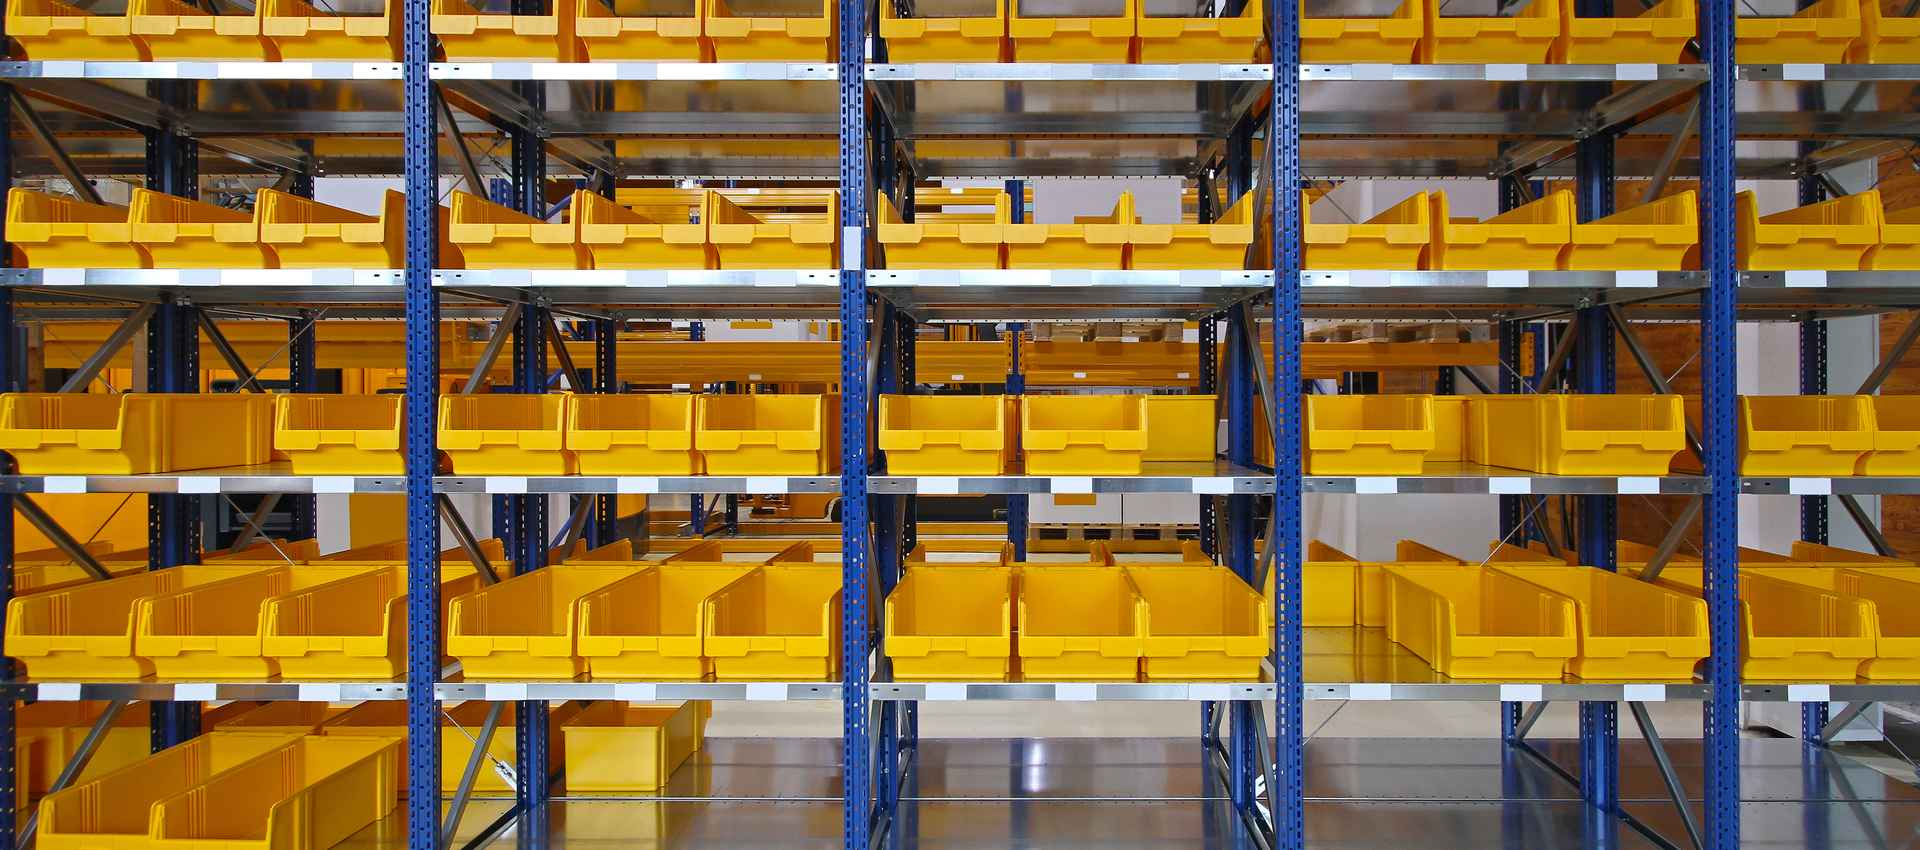 5 Essentials to Get Your Warehouse Ready for E-Commerce